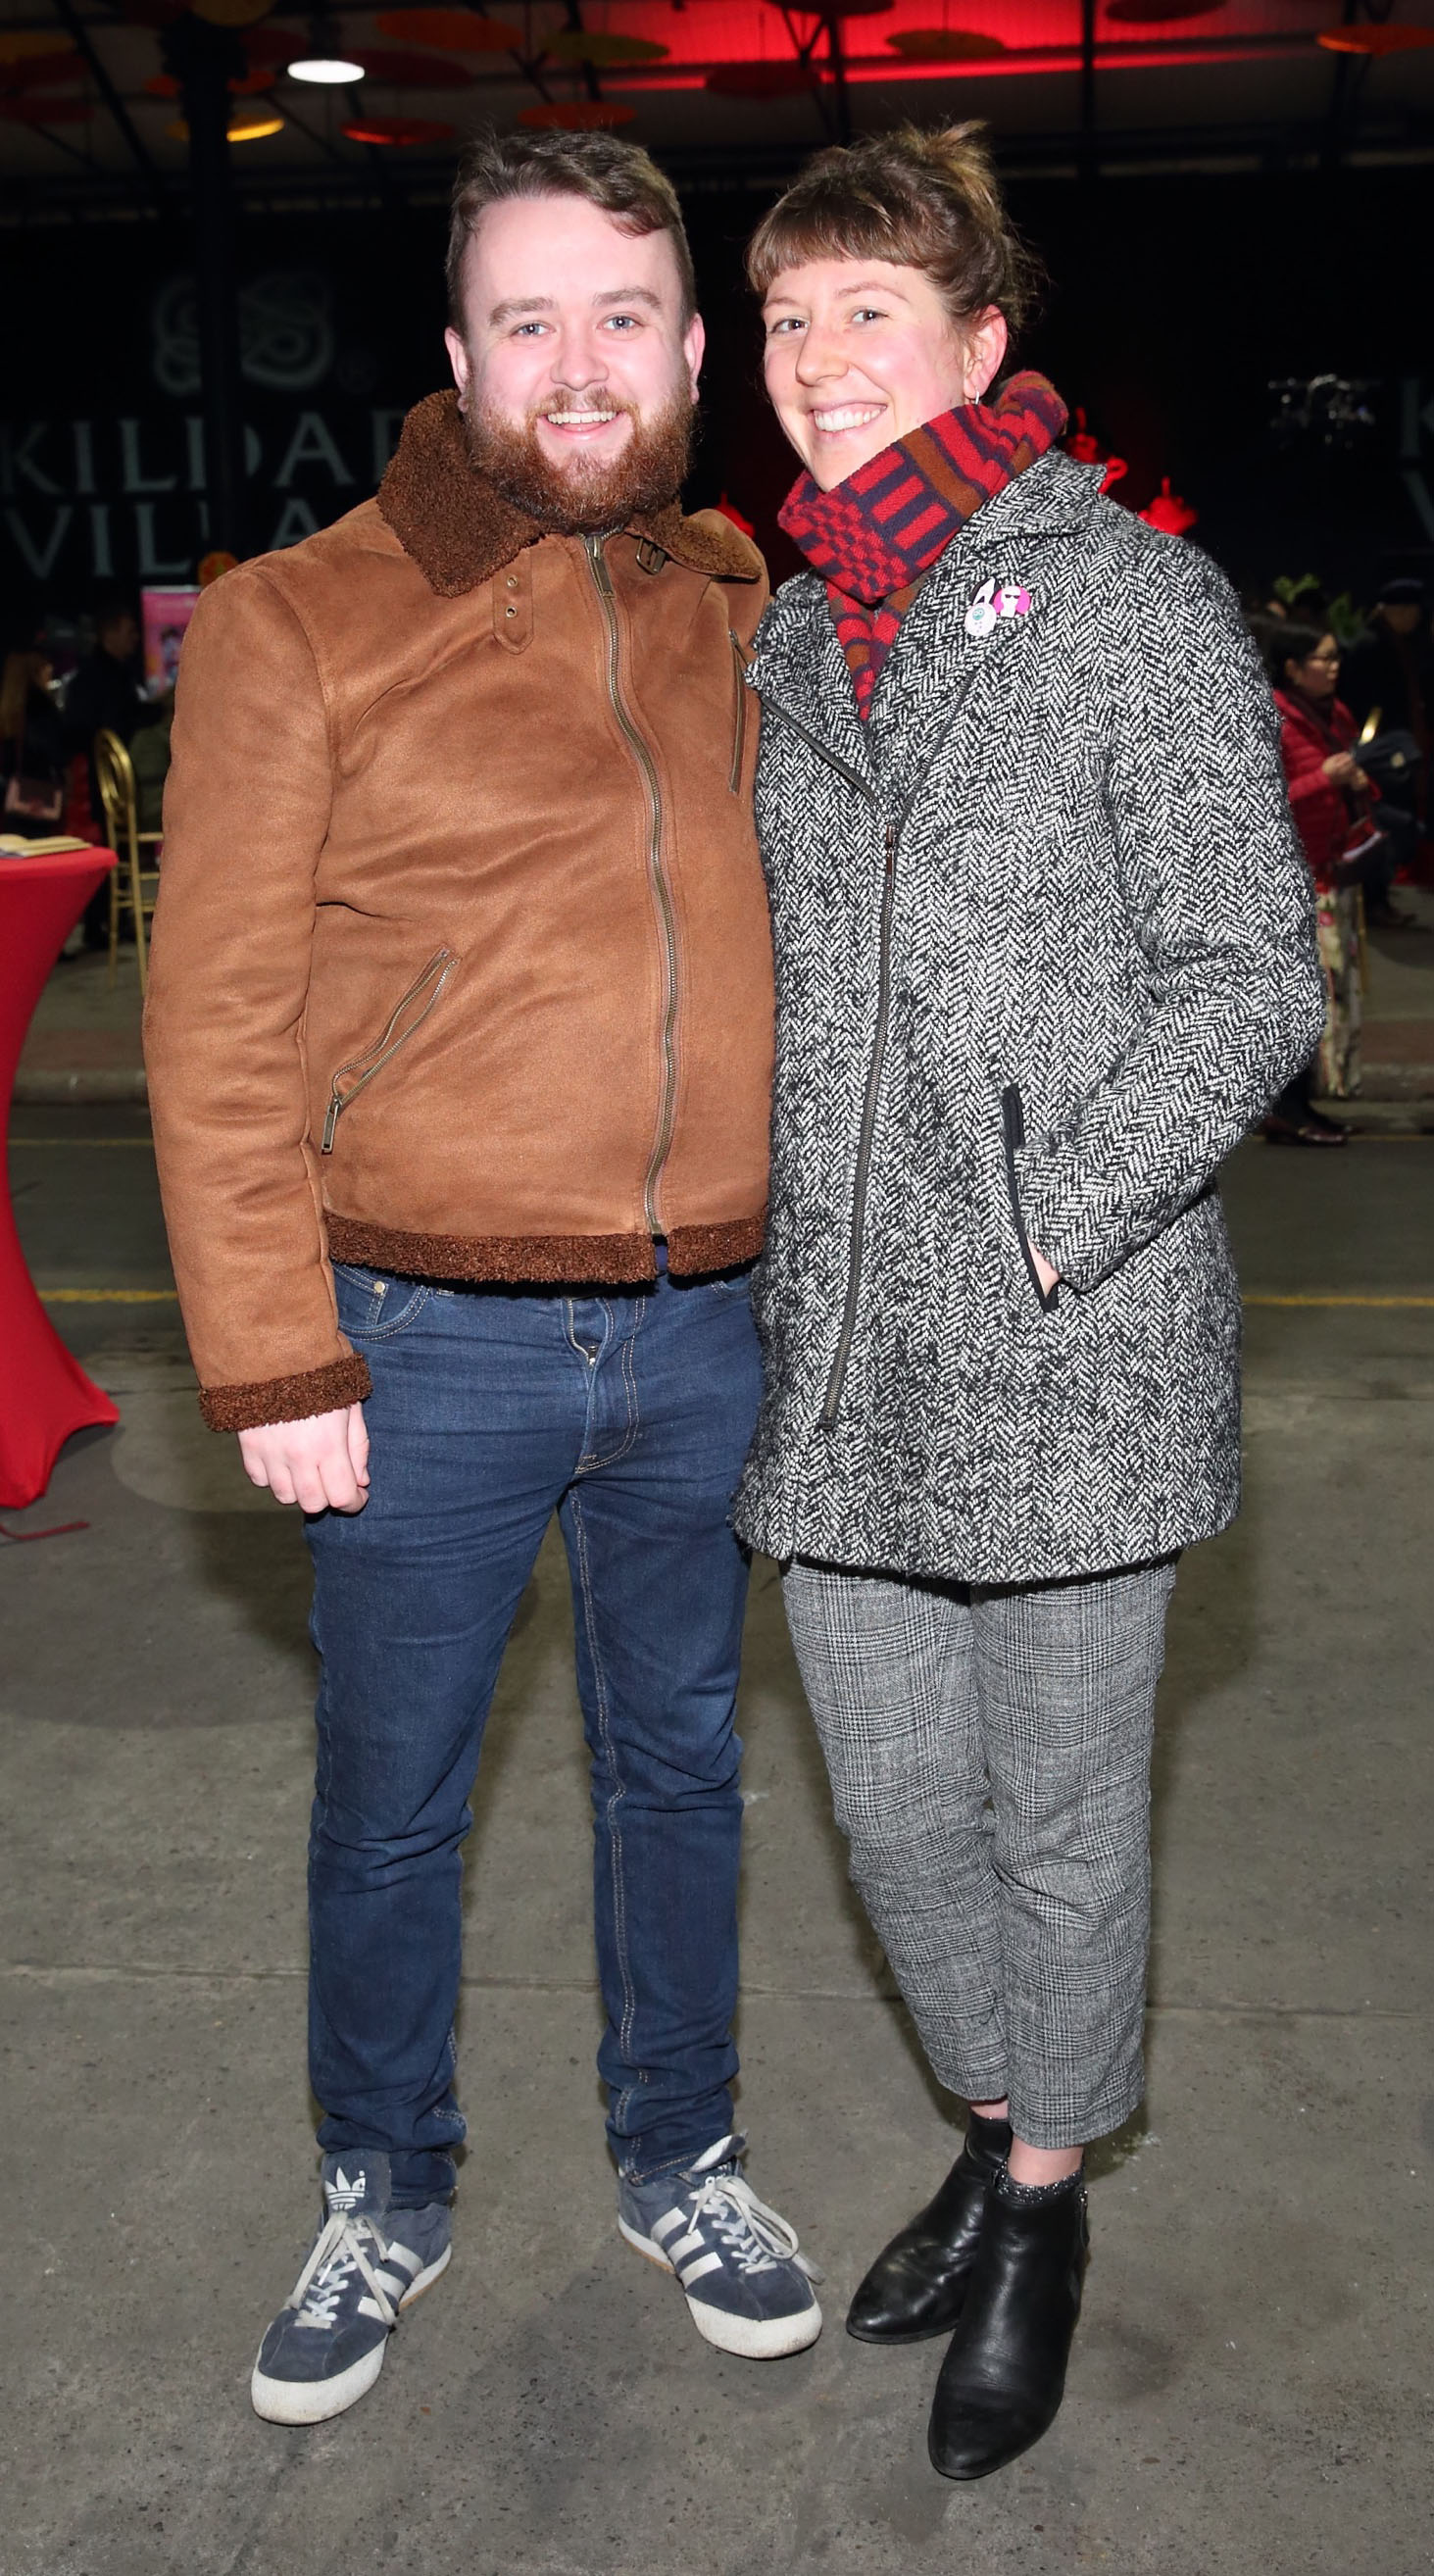 Niall Swan and Jess Worsdale at the opening ceremony of Dublin Chinese New Year Festival 2020 which runs from 24th January - 10th February and celebrates the Year of the Rat.  Pic: Brian McEvoy Photography